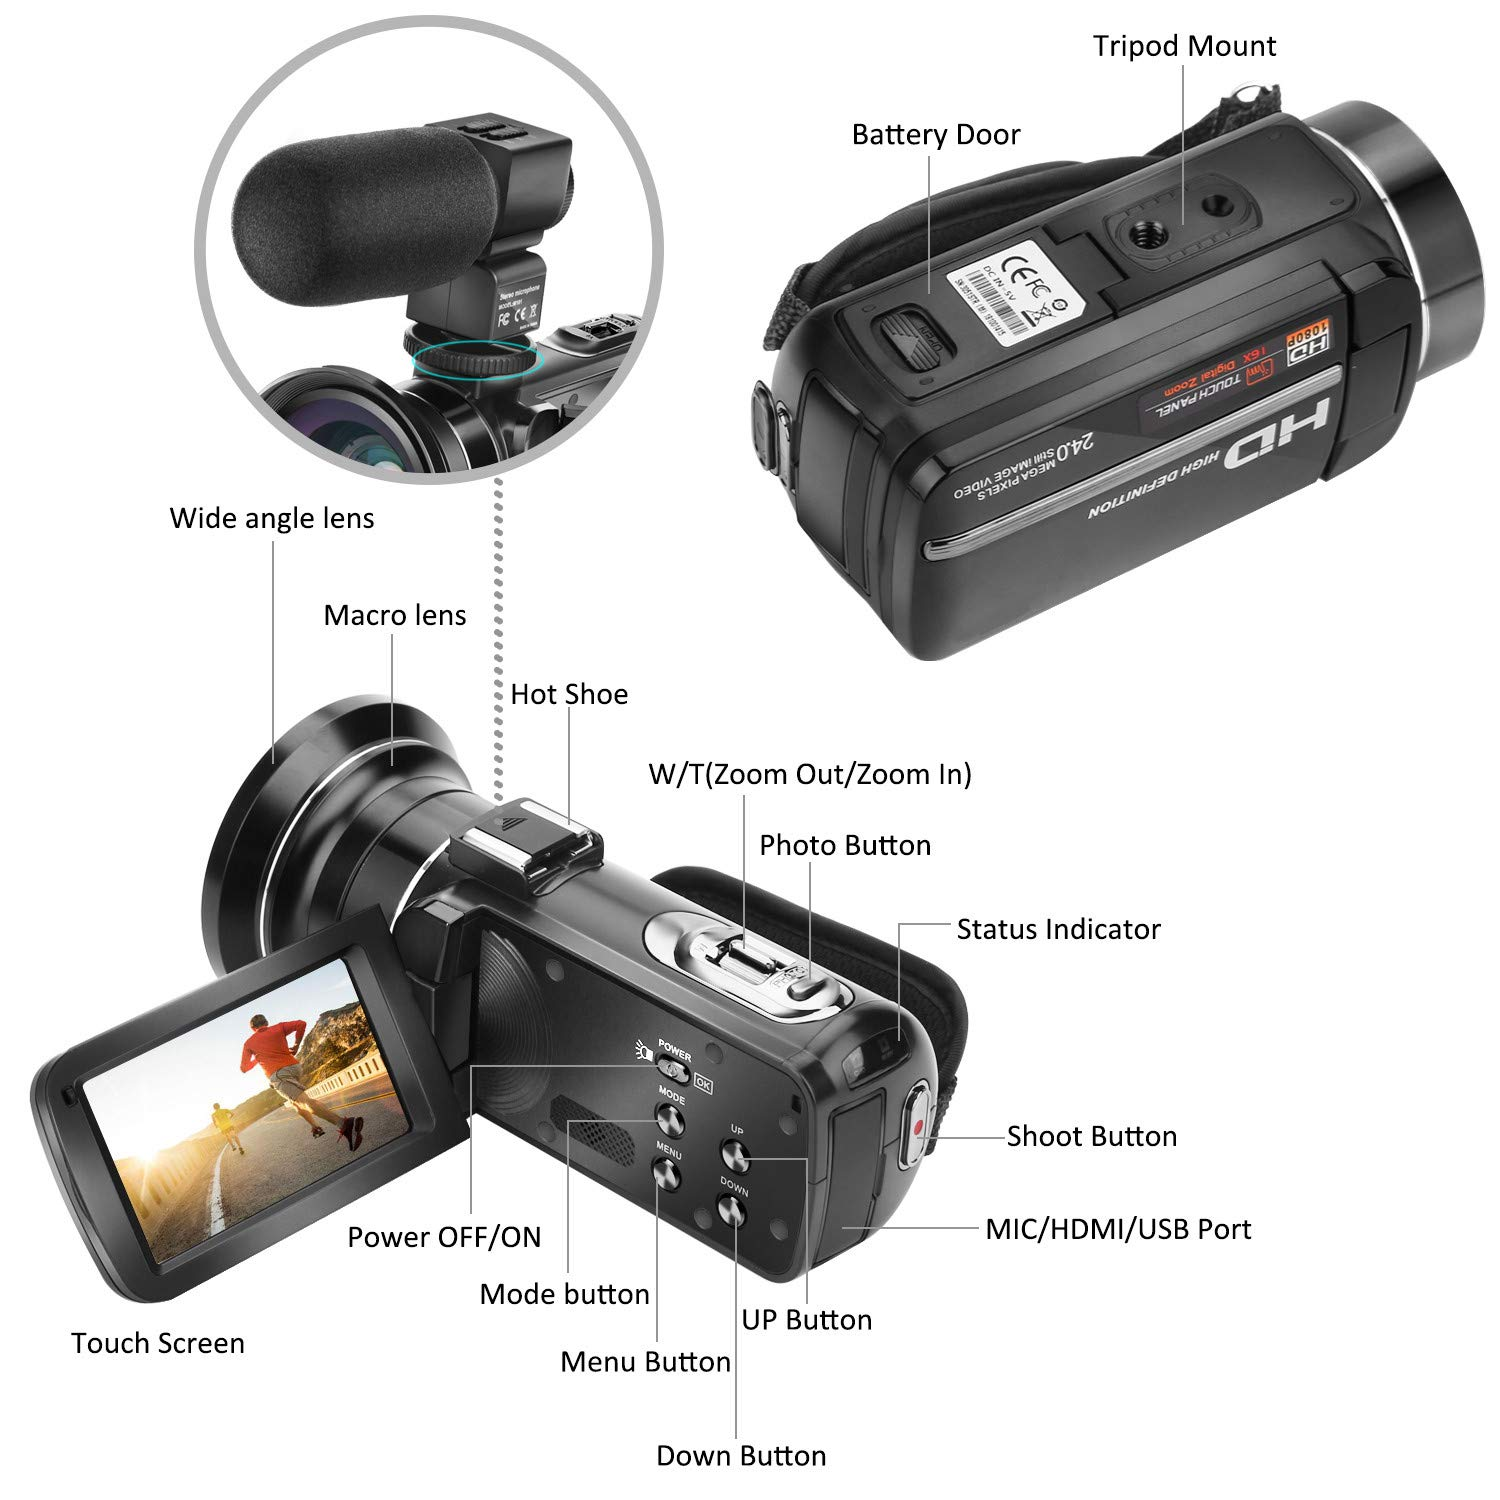 Camcorder Full HD 30FPS Video Camera Kenuo 1080P 24.0MP Digital Camera 3.0 Inch LCD 270 Degrees Rotatable Touch Screen IR Night Vision 16X Digital Zoom YouTube Vlogging Camera Face Detection With External Microphone Wide Angle Lens And 32GB SD Card